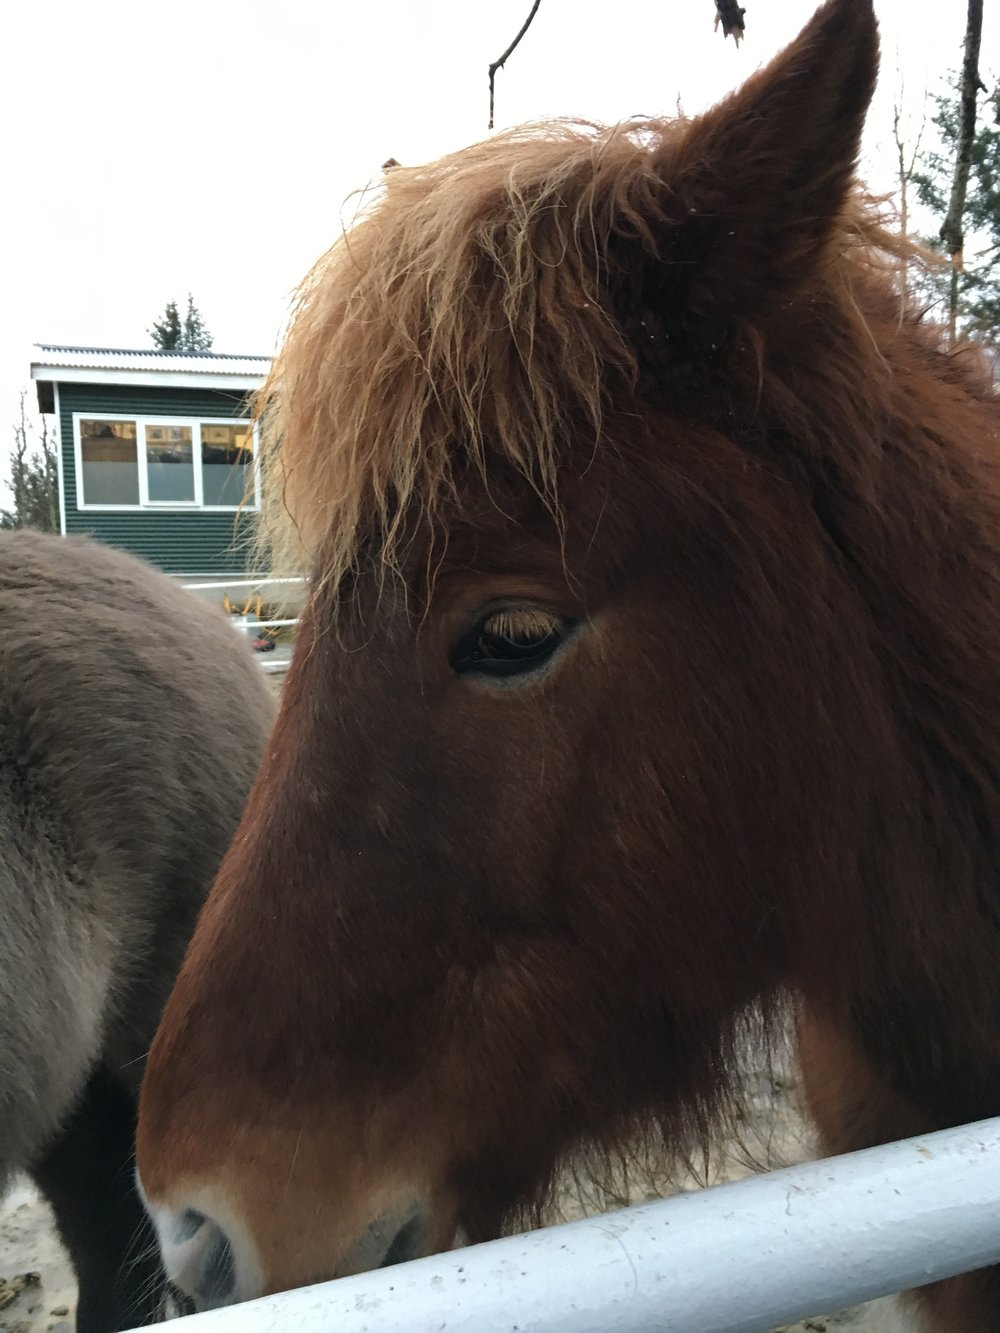 A stop at Fridheimar farm allowed us to get up close and personal with the furry, iconic Icelandic Horses.